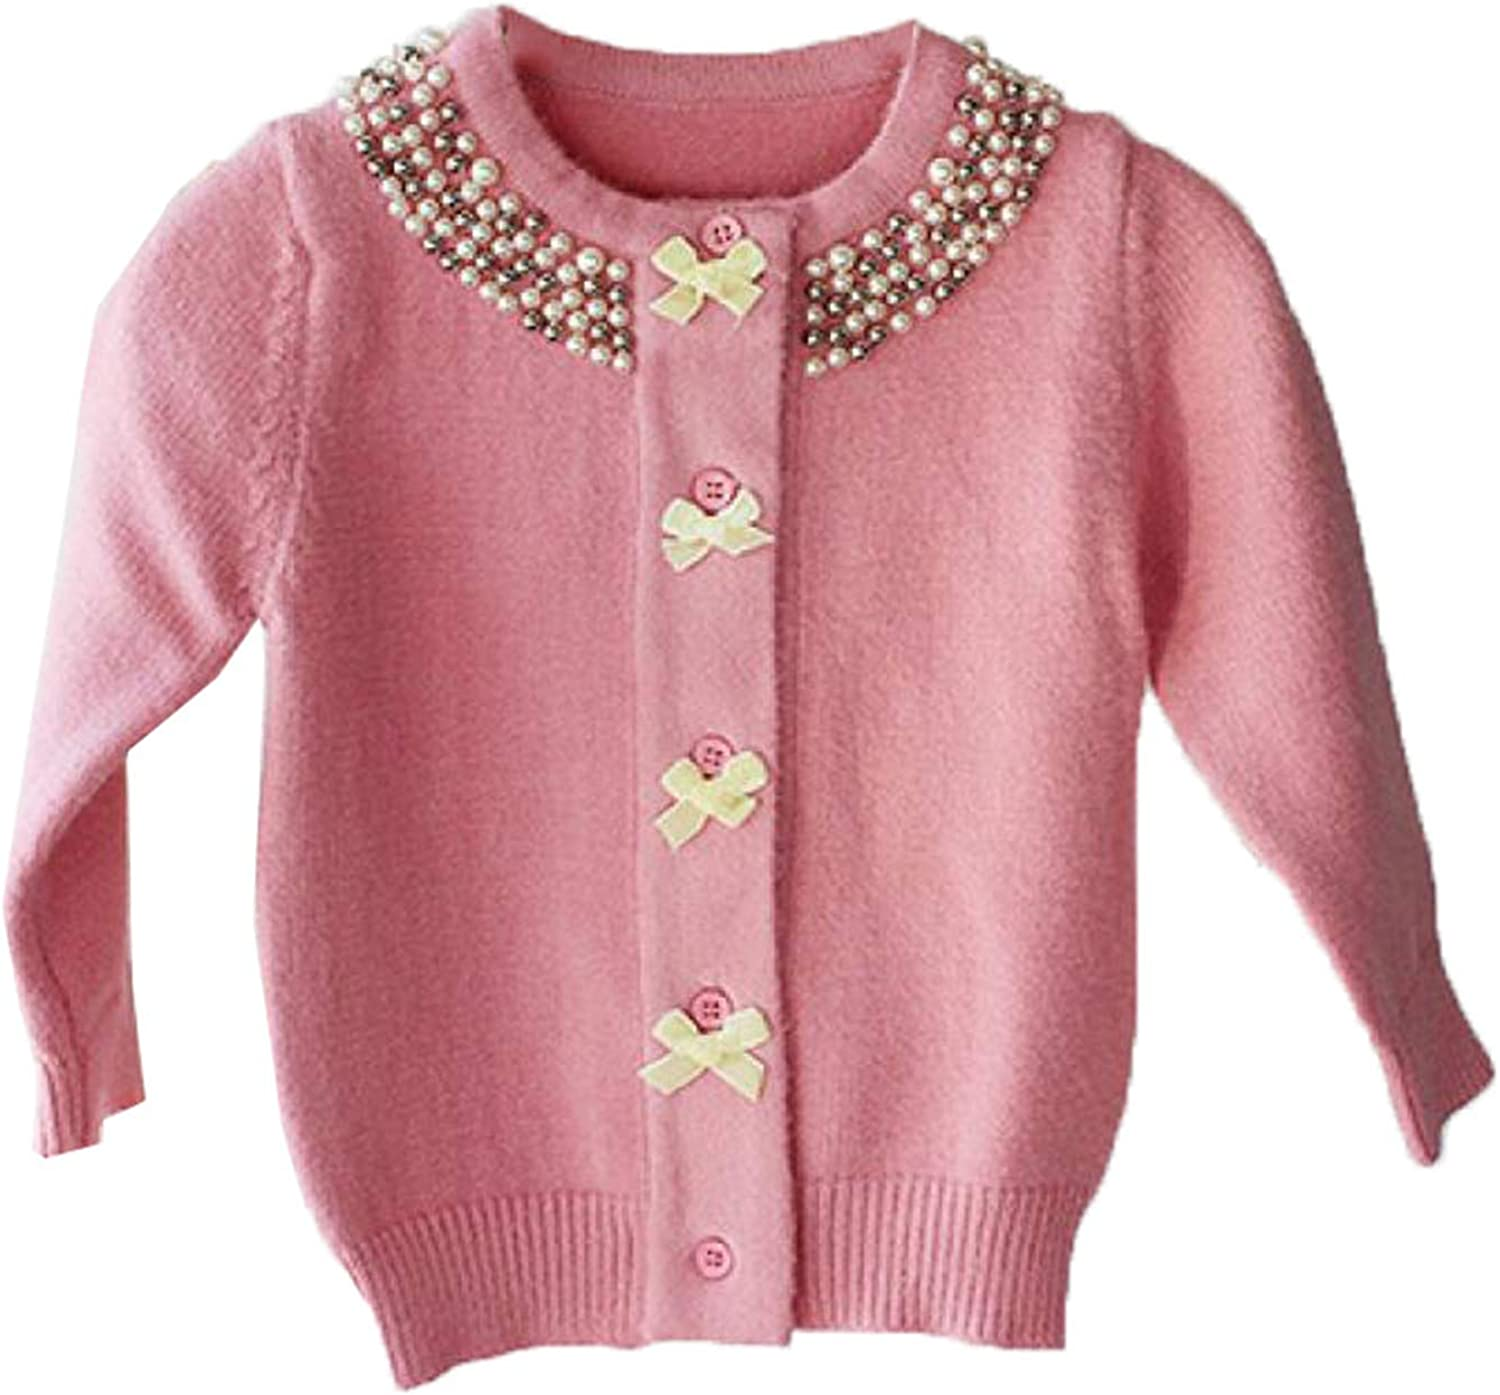 Autumn Christmas Coat for Girls Sweater Kids Cardigan Woolen Children Sweater Knitted Bow Pearl Girls Clothes